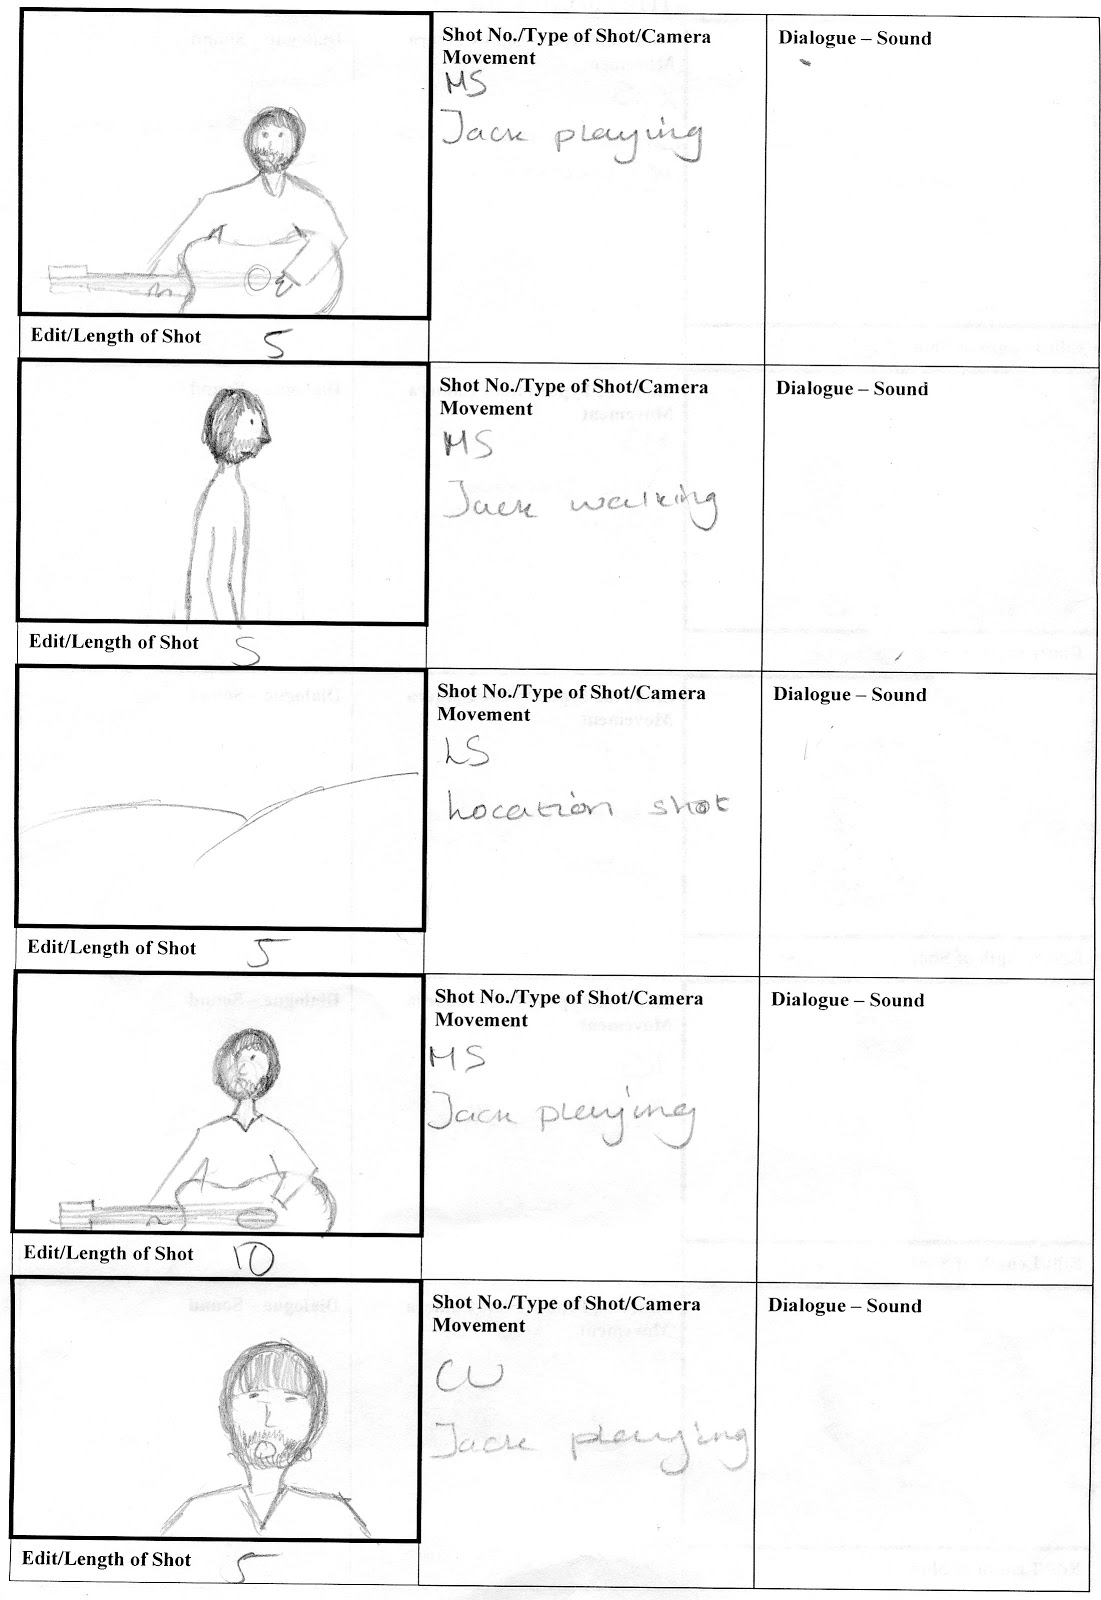 This Is Our New Storyboard For Our Music Video. We Have Gone With A Mainly  Performance Based Video That Will Take Place Outside. Idea